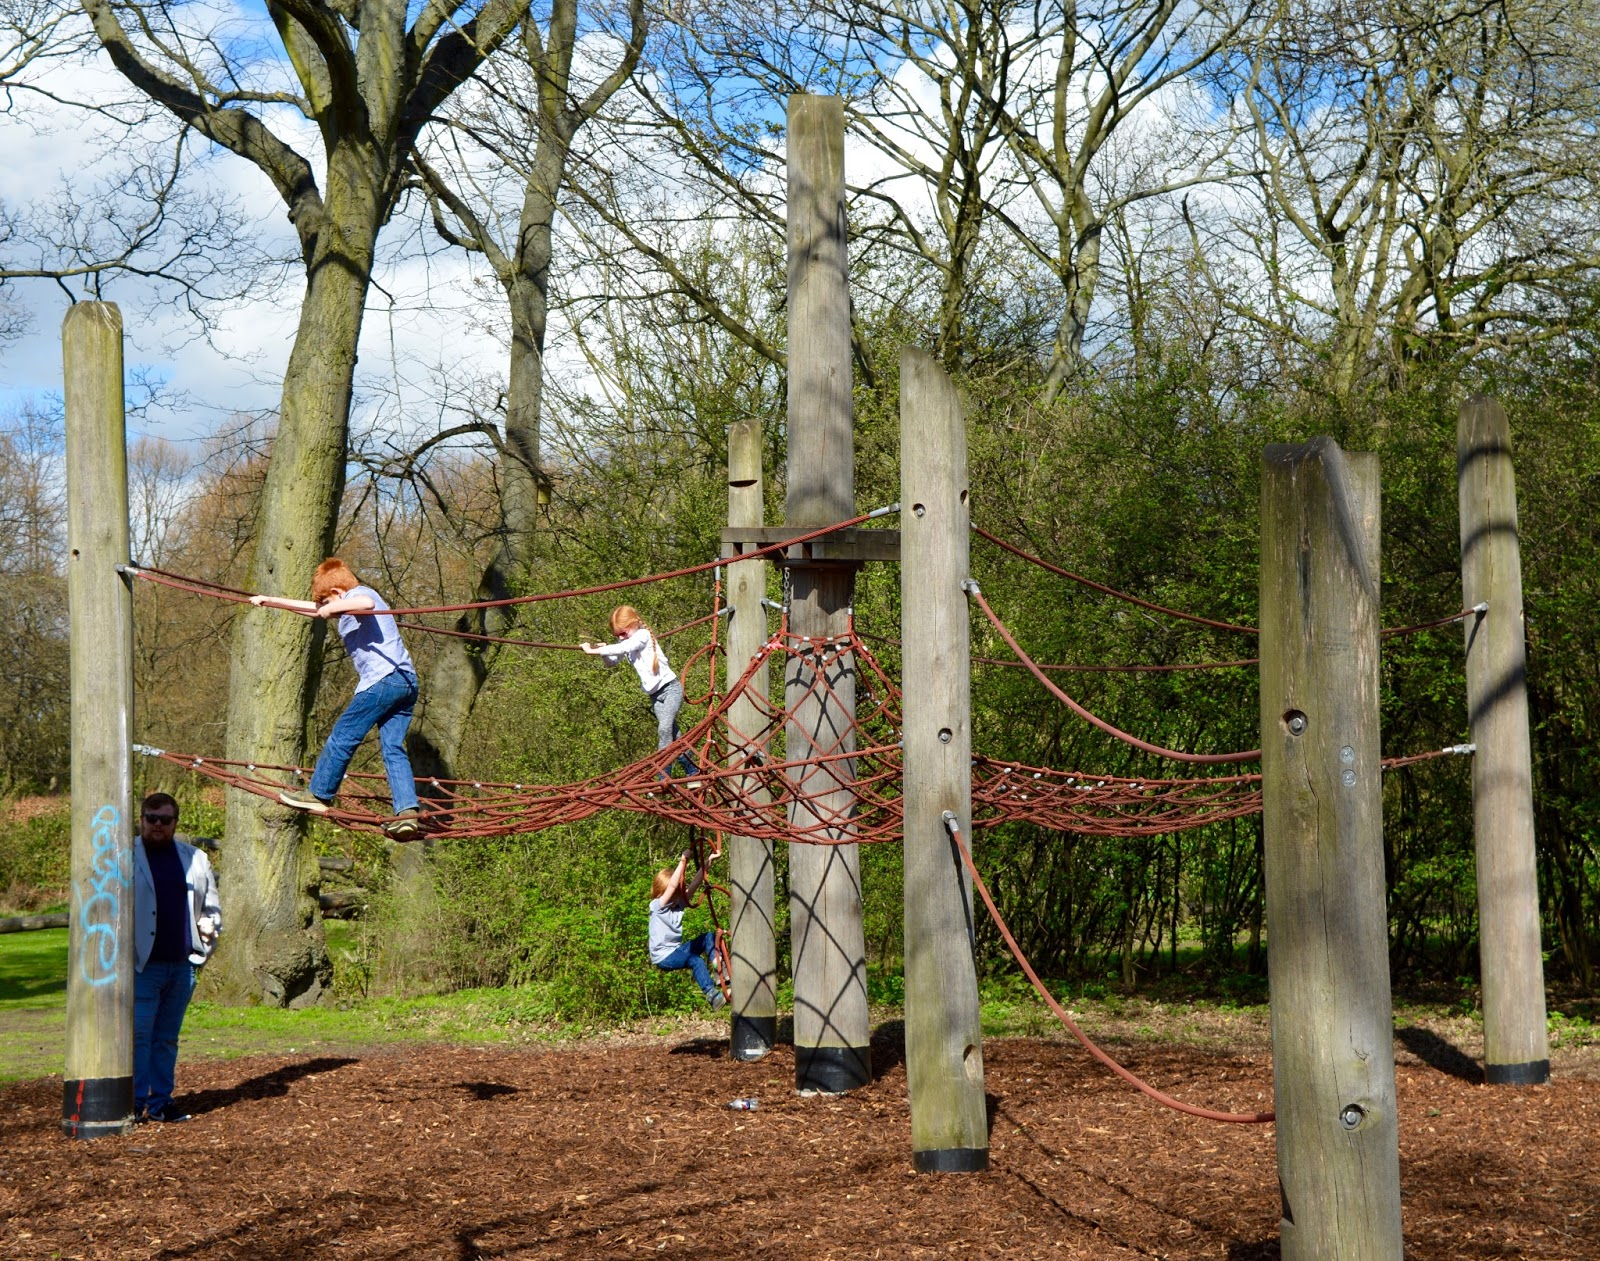 Exhibition Park Newcastle |  Net climbing in the park